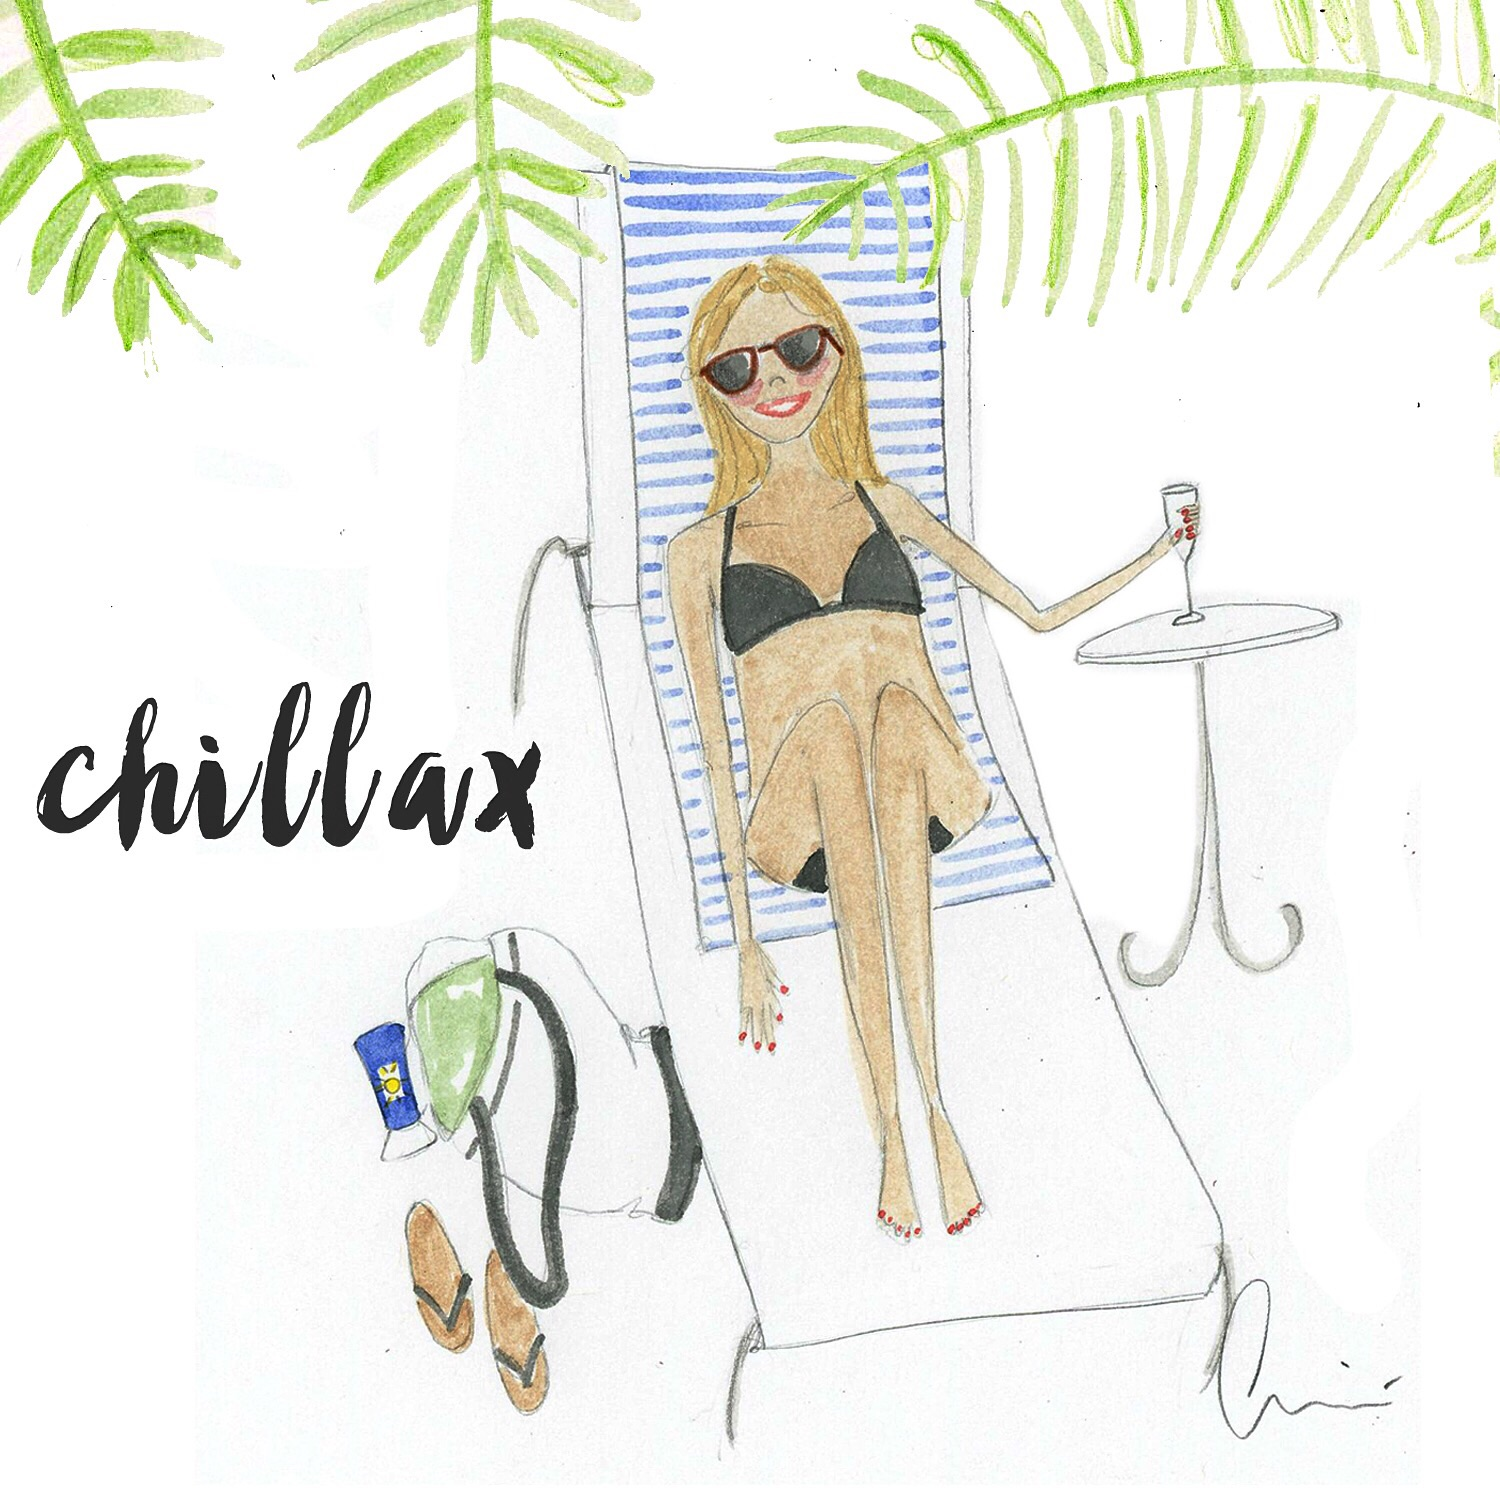 Chill-ax - To calm down and relax.